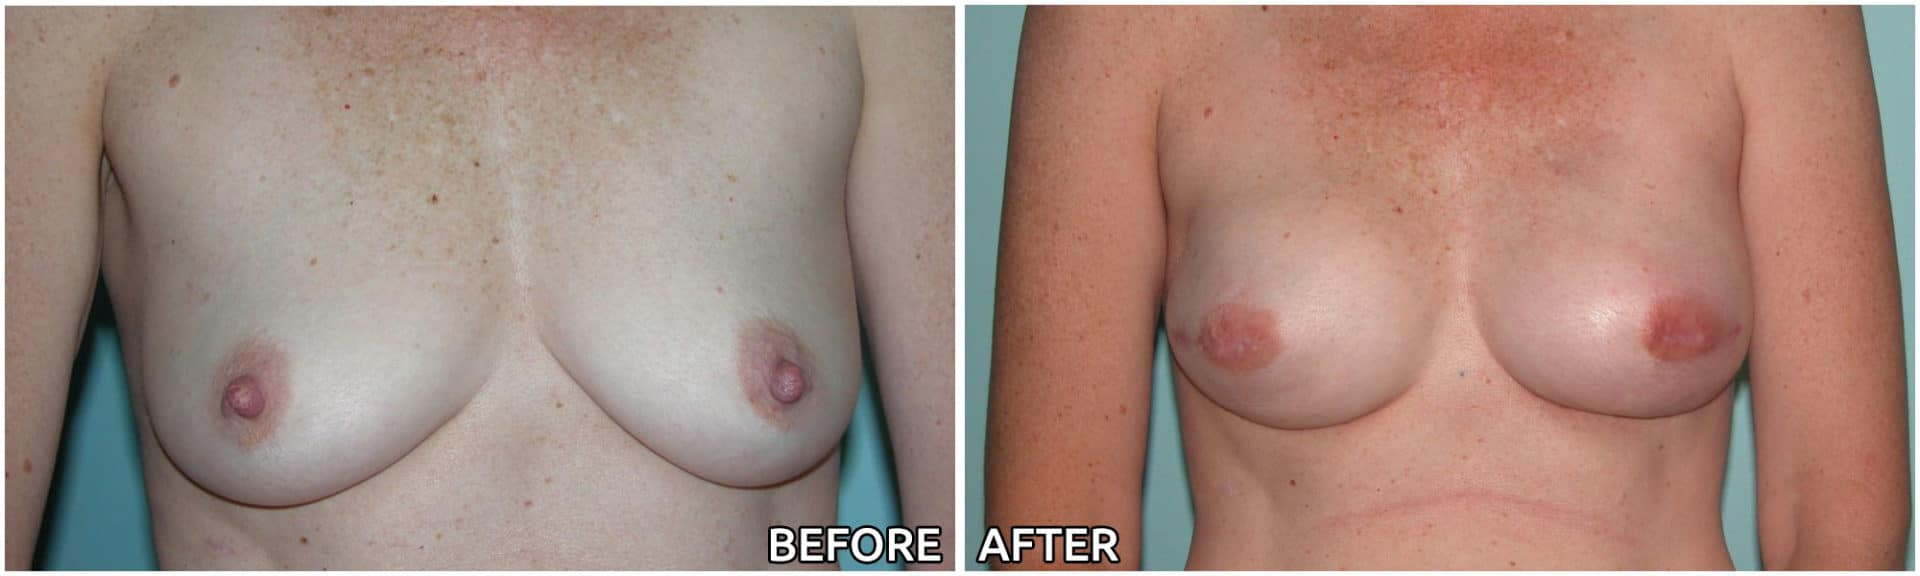 breast-reconstruction8